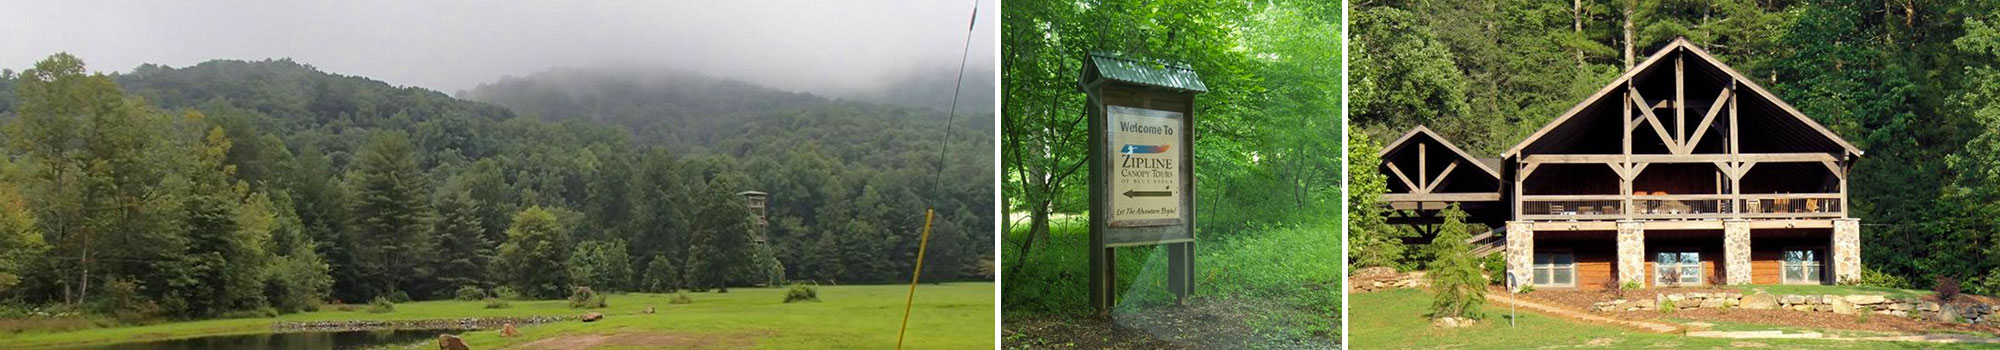 ZipLine Canopy Tours of Blue Ridge Lodging